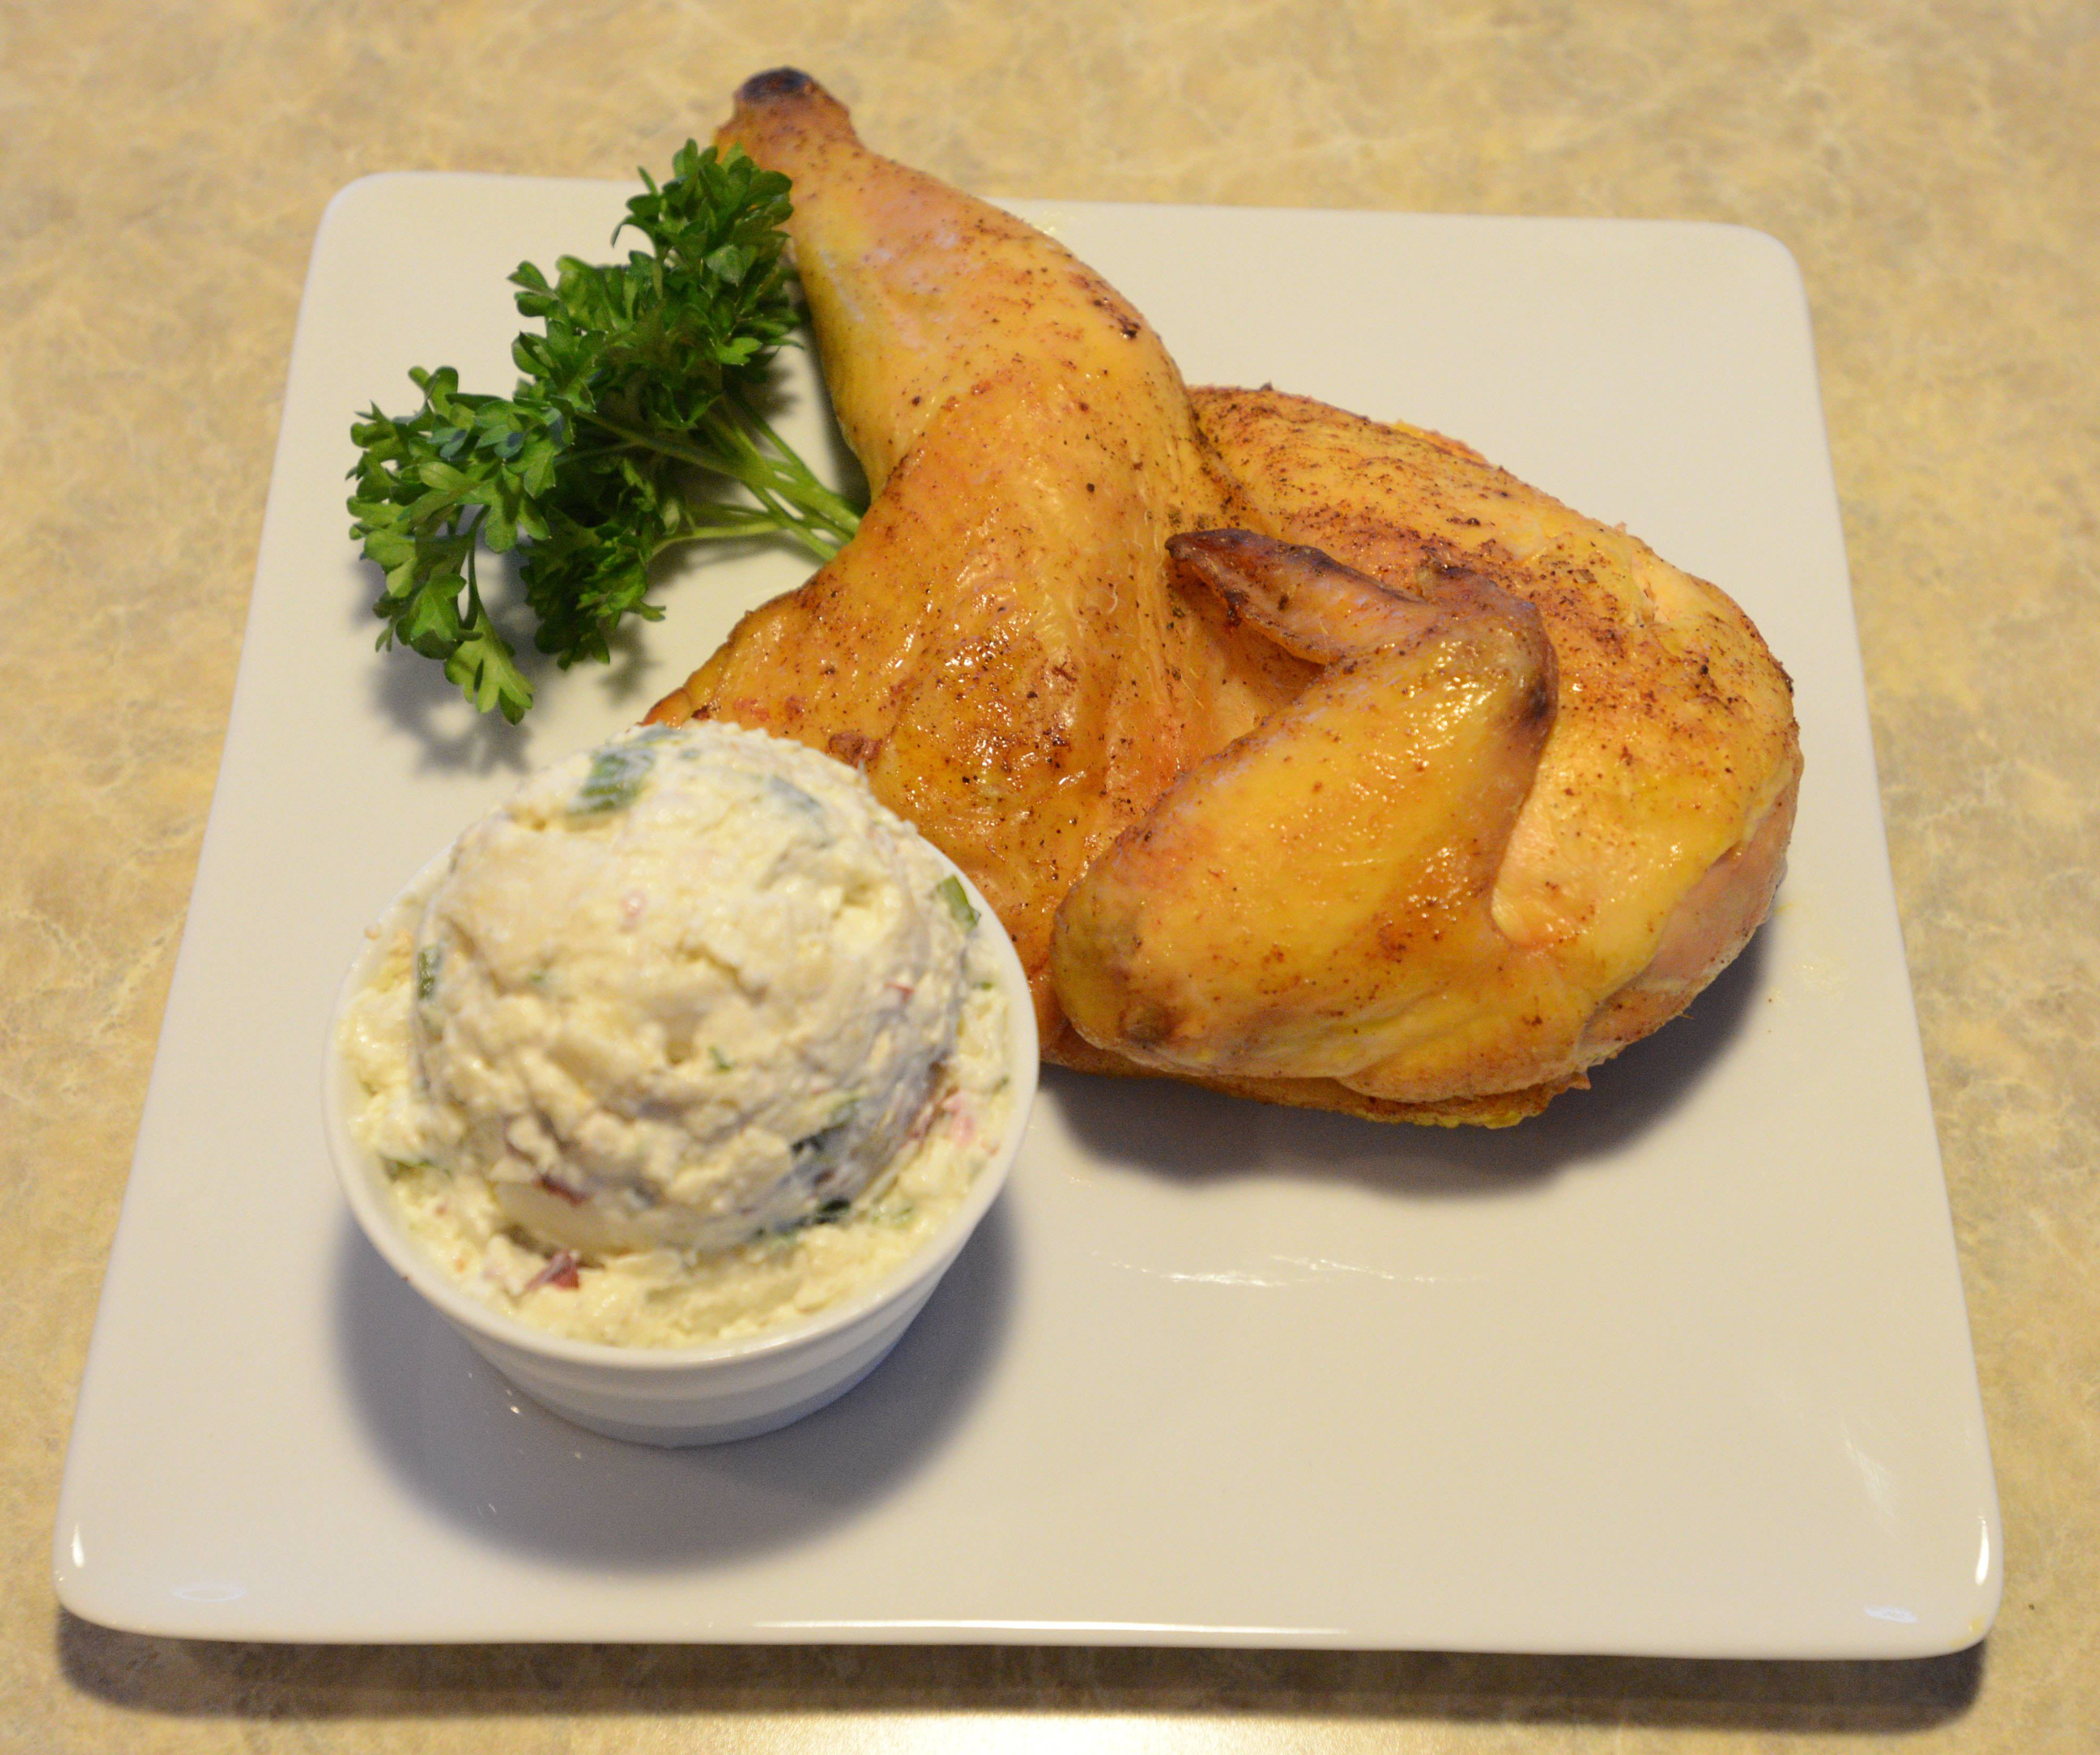 Pair chicken with potato salad or one of 13 other sides at Park West Restaurant & Smokehouse in Villa Park.